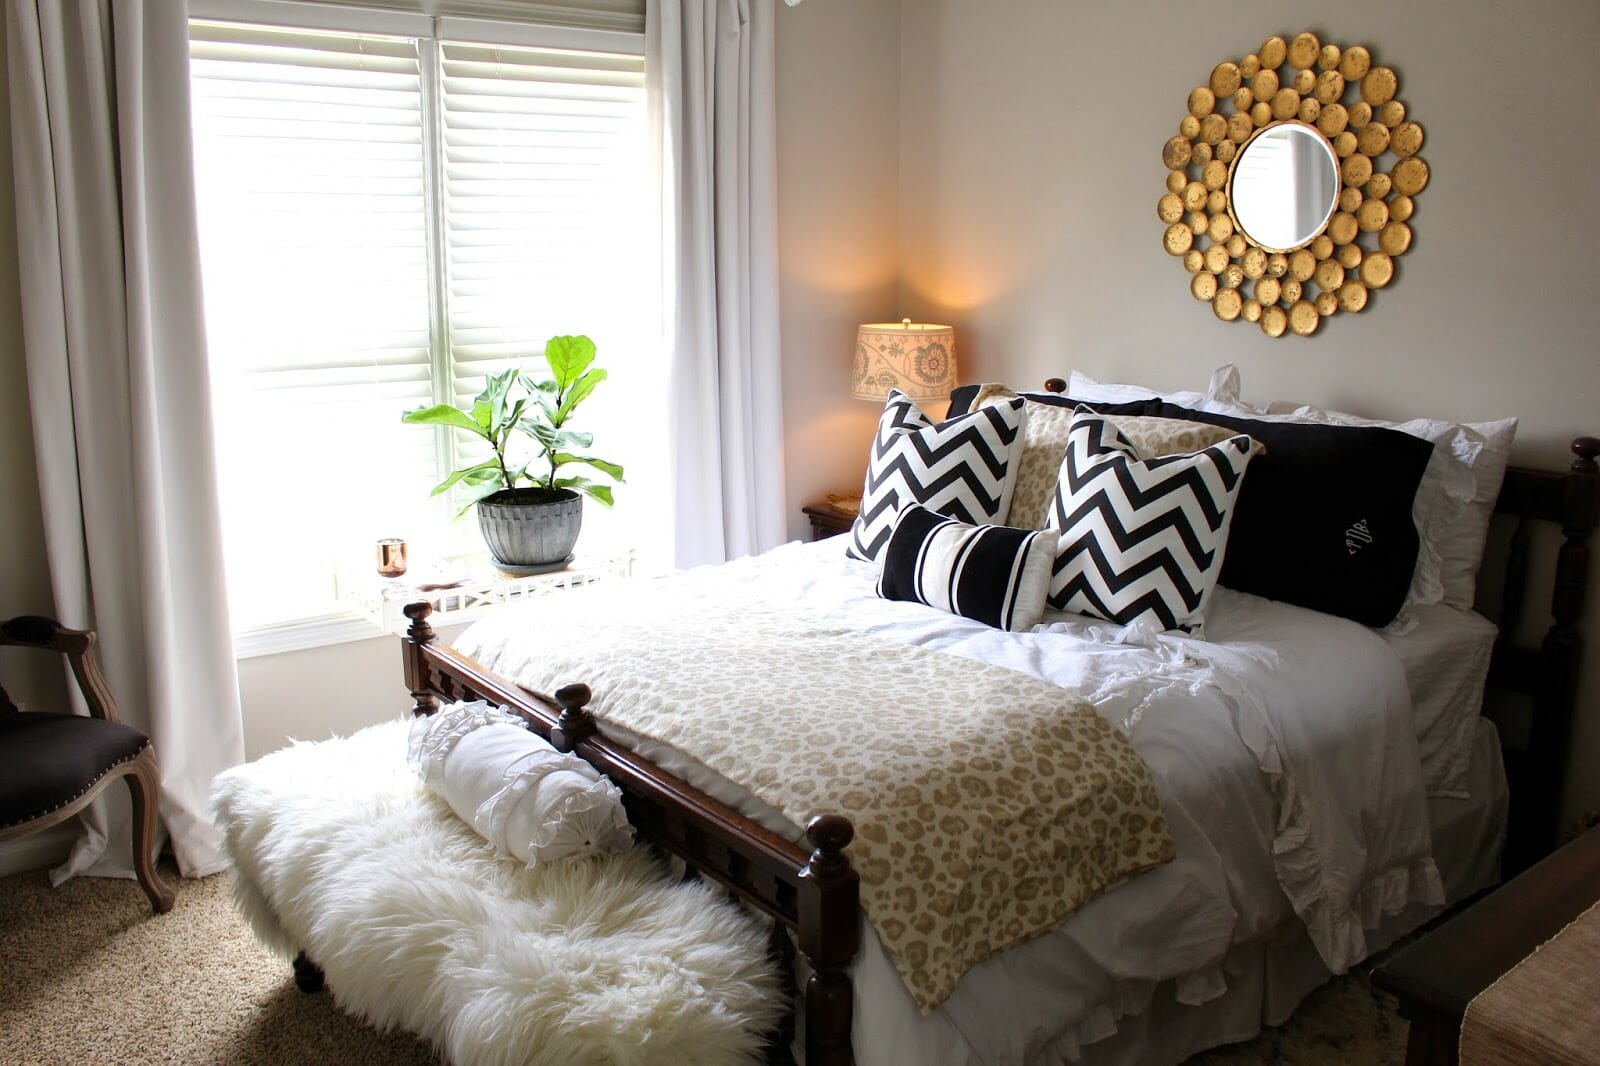 Top 5 decor tips for creating the perfect guest room Guest bedroom decorating tips